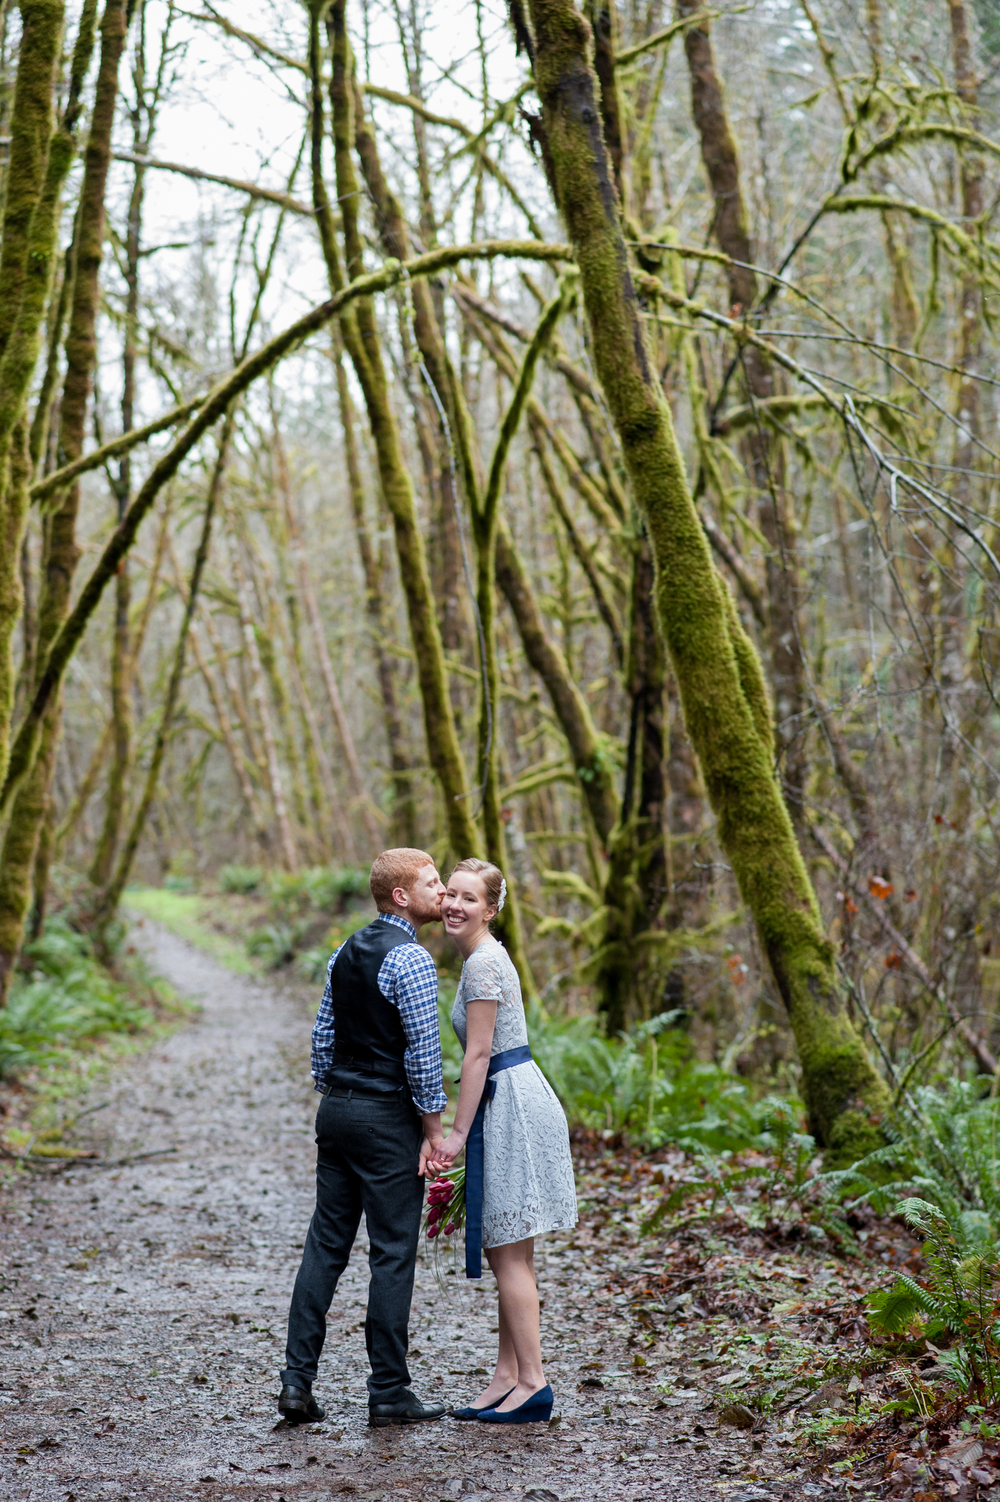 51-beazell-memorial-forest-intimate-outdoor-oregon-wedding.jpg